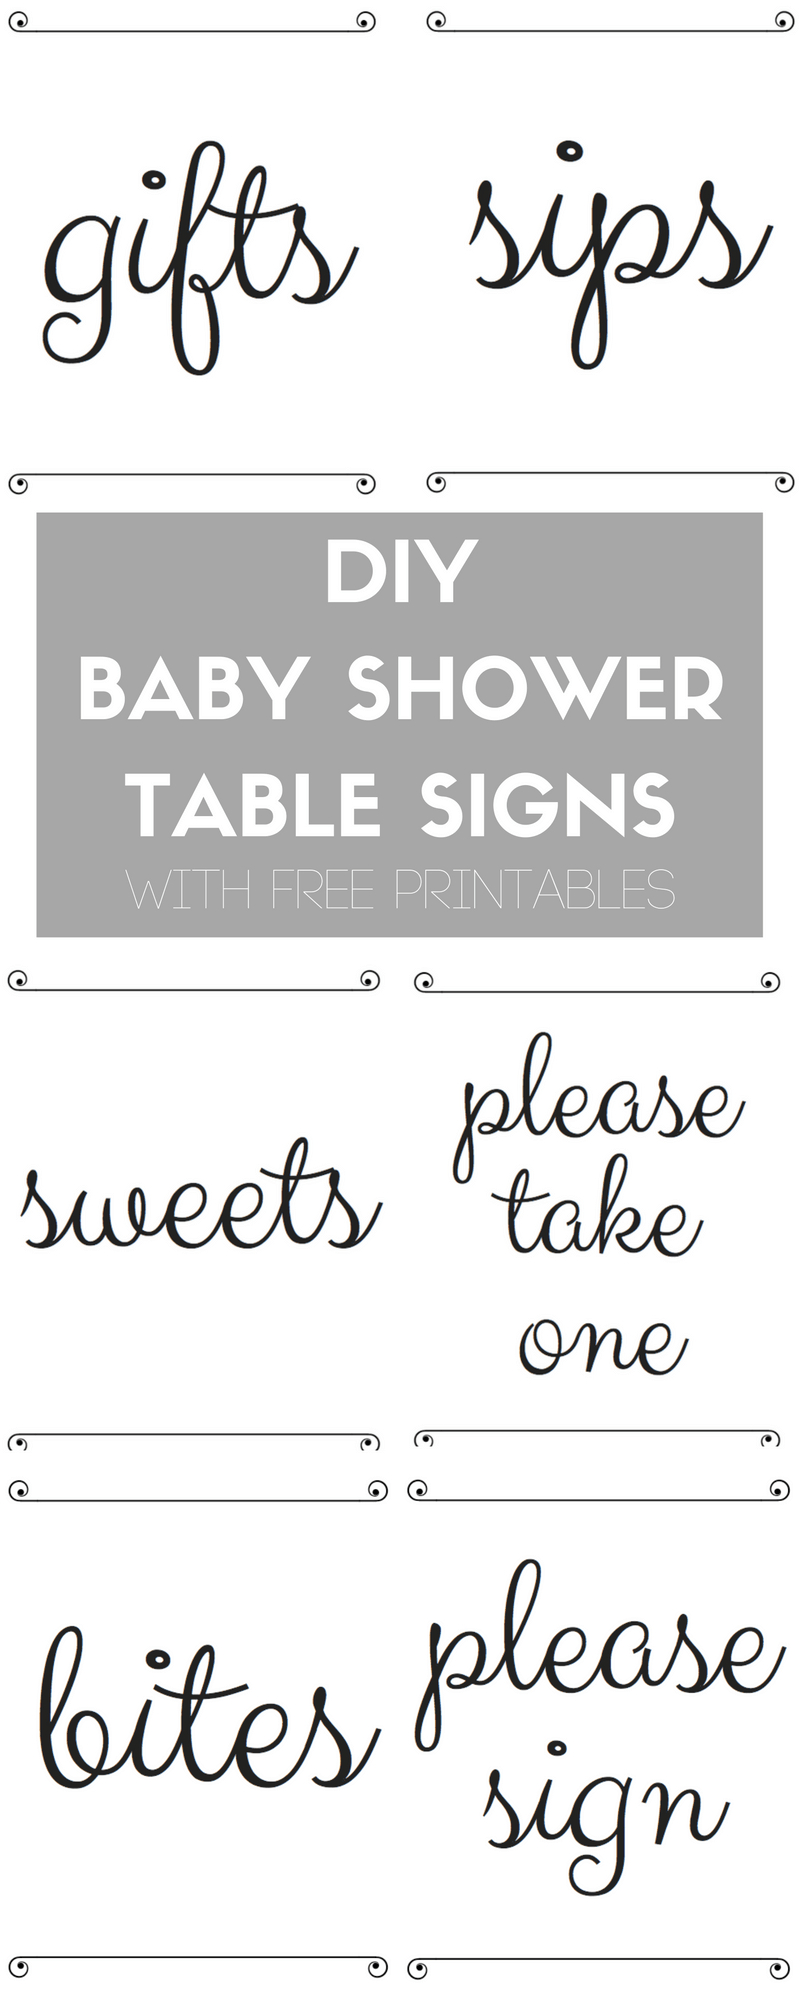 Diy Baby Shower Table Signs With Free Printables | Best Of The Blog - Free Baby Shower Printables Decorations